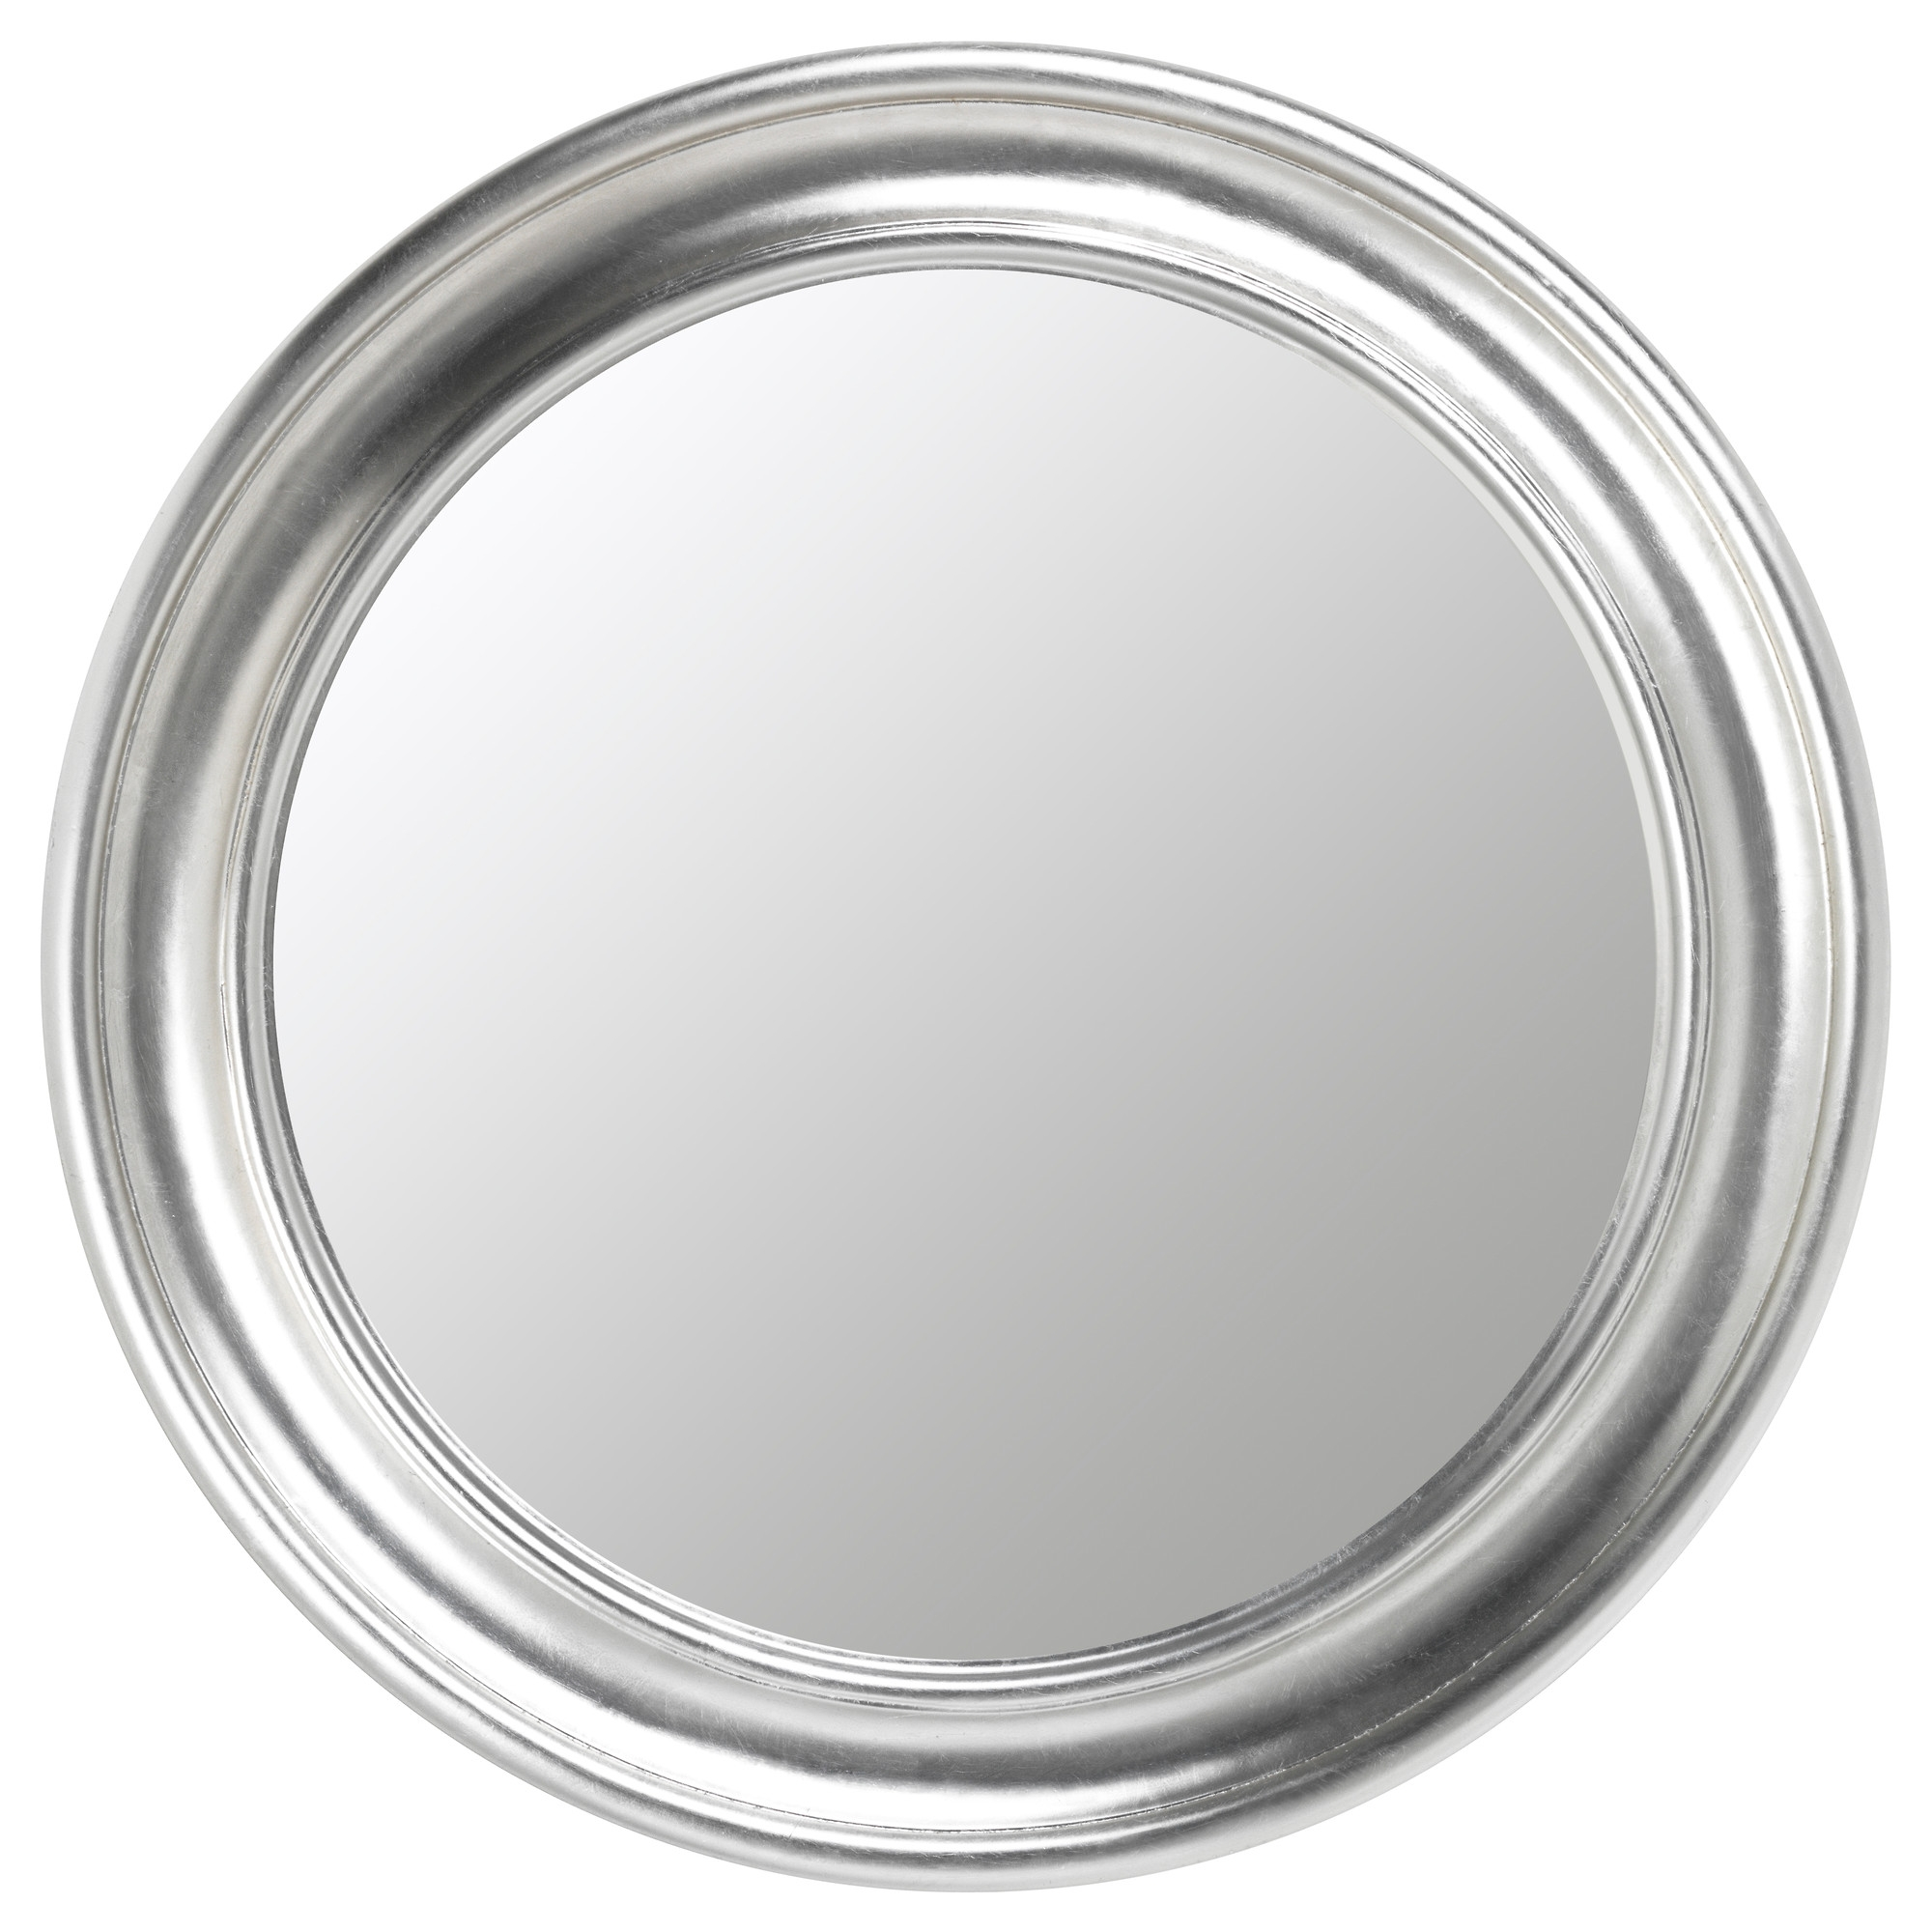 Songe Mirror Ikea Ikea Pinterest Bedrooms Intended For Silver Round Mirrors (Image 13 of 15)